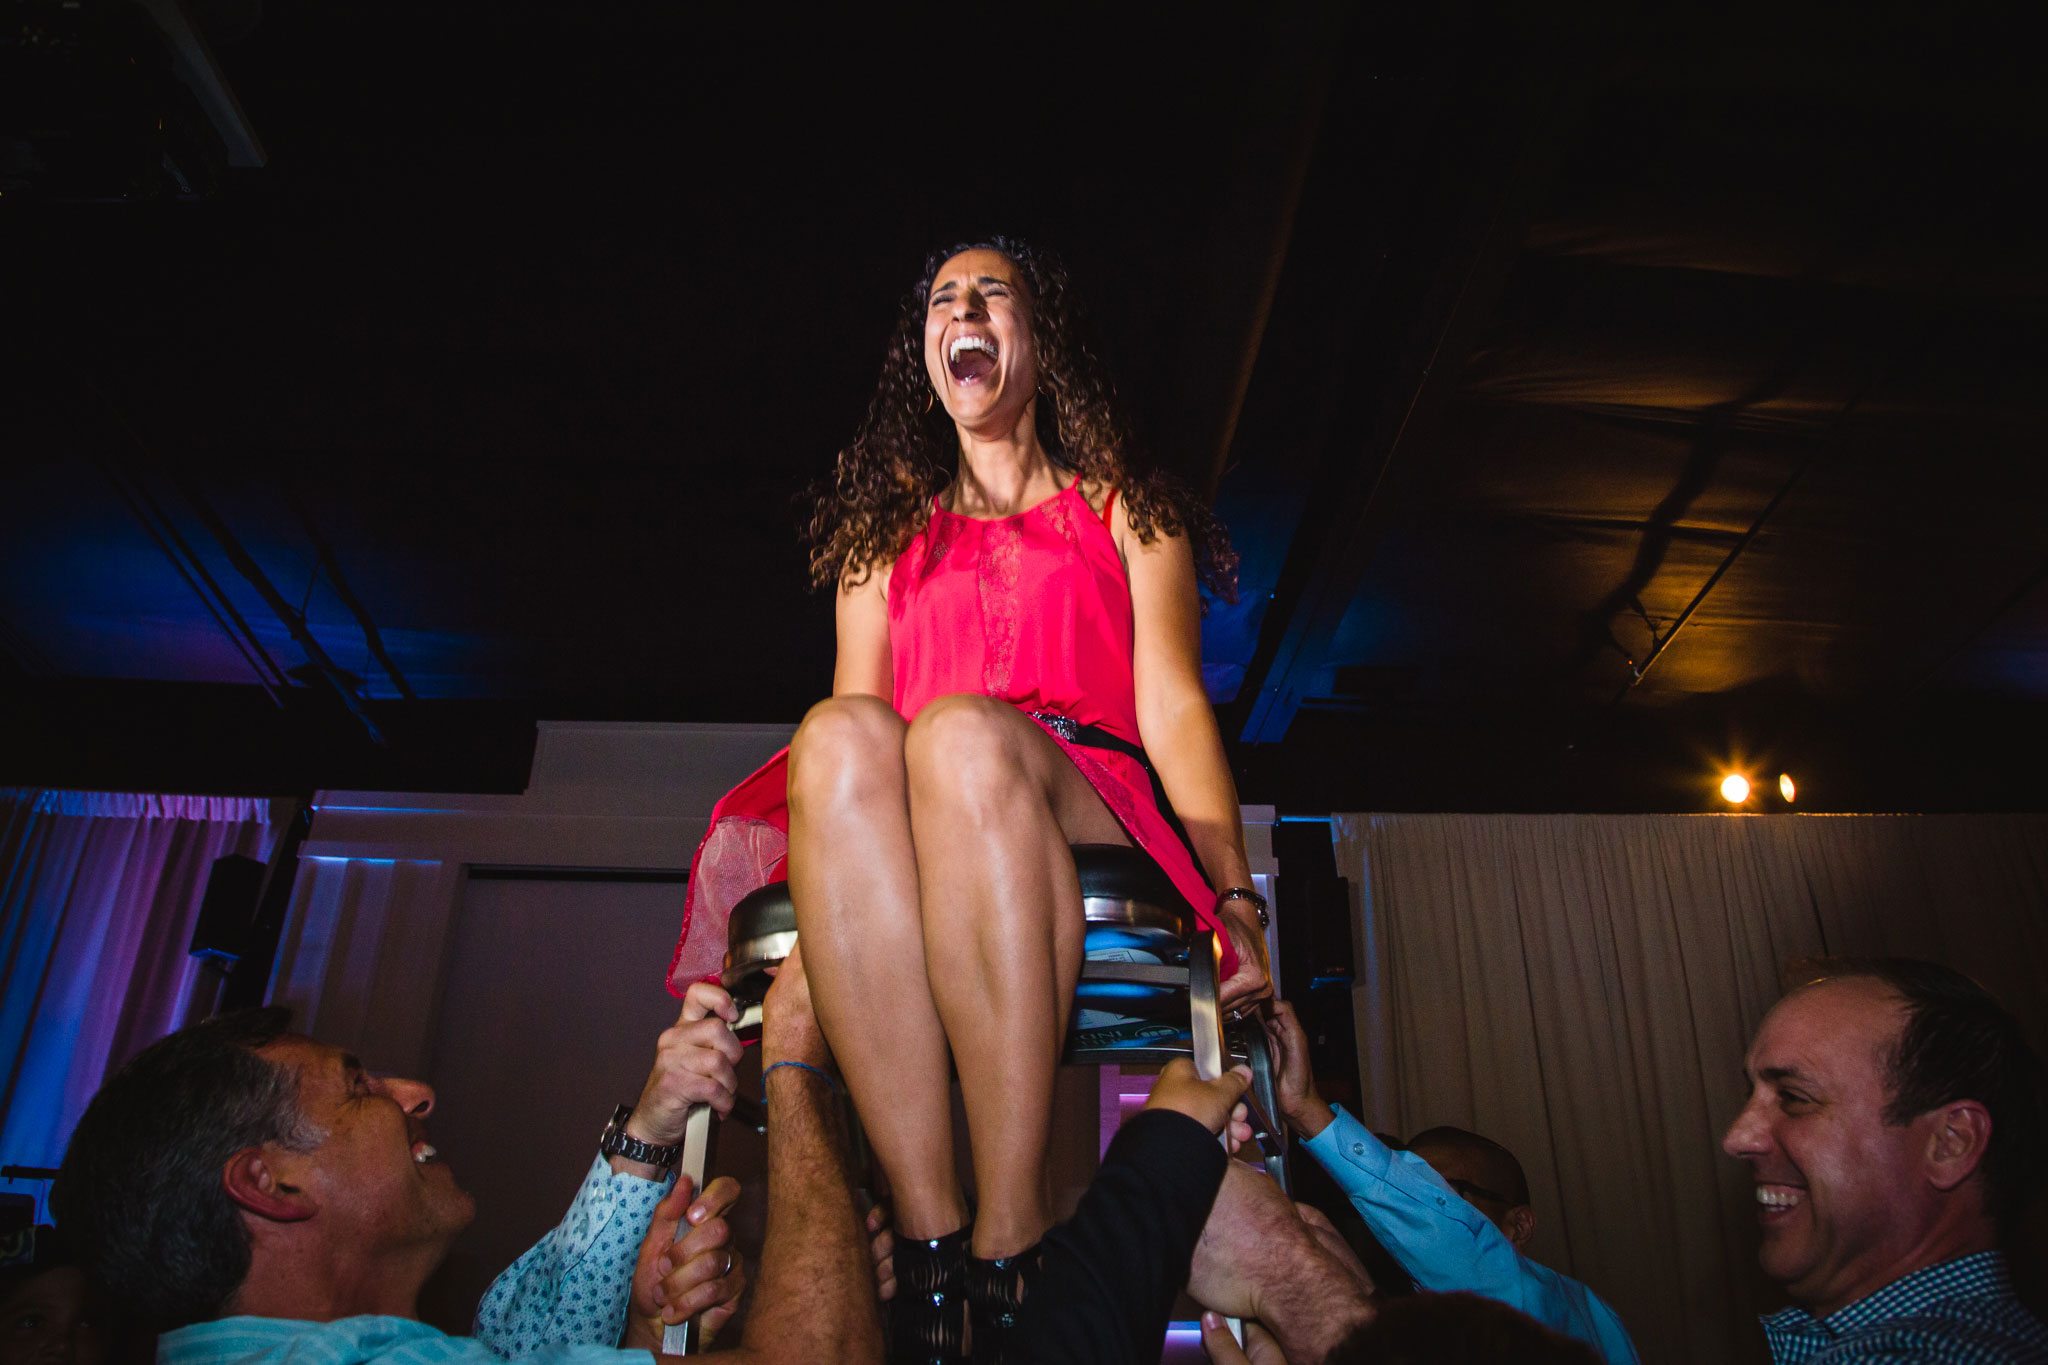 wedding reception with woman being raised up in a chair los angeles photographer Rebecca y Las Otras